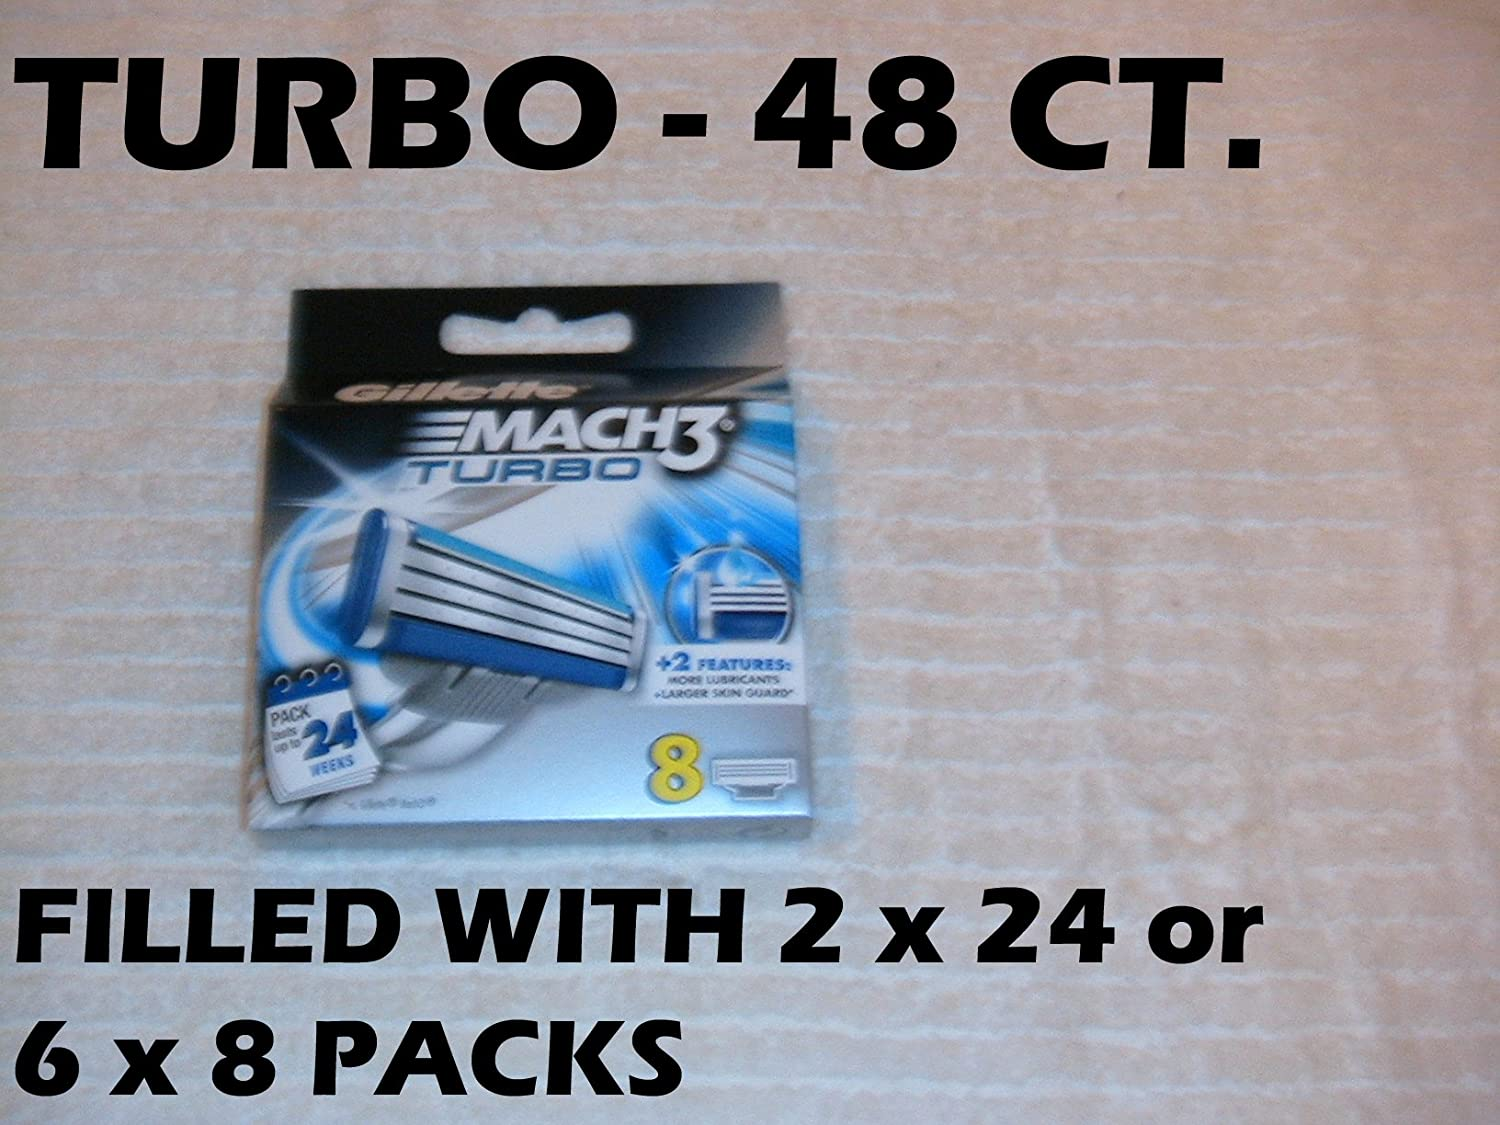 (Wholesale 2 Pack) Mach3 Turbo Refill Cartridge Blades, 24 Count (48 Total) 81LqVniiLALSL1500_